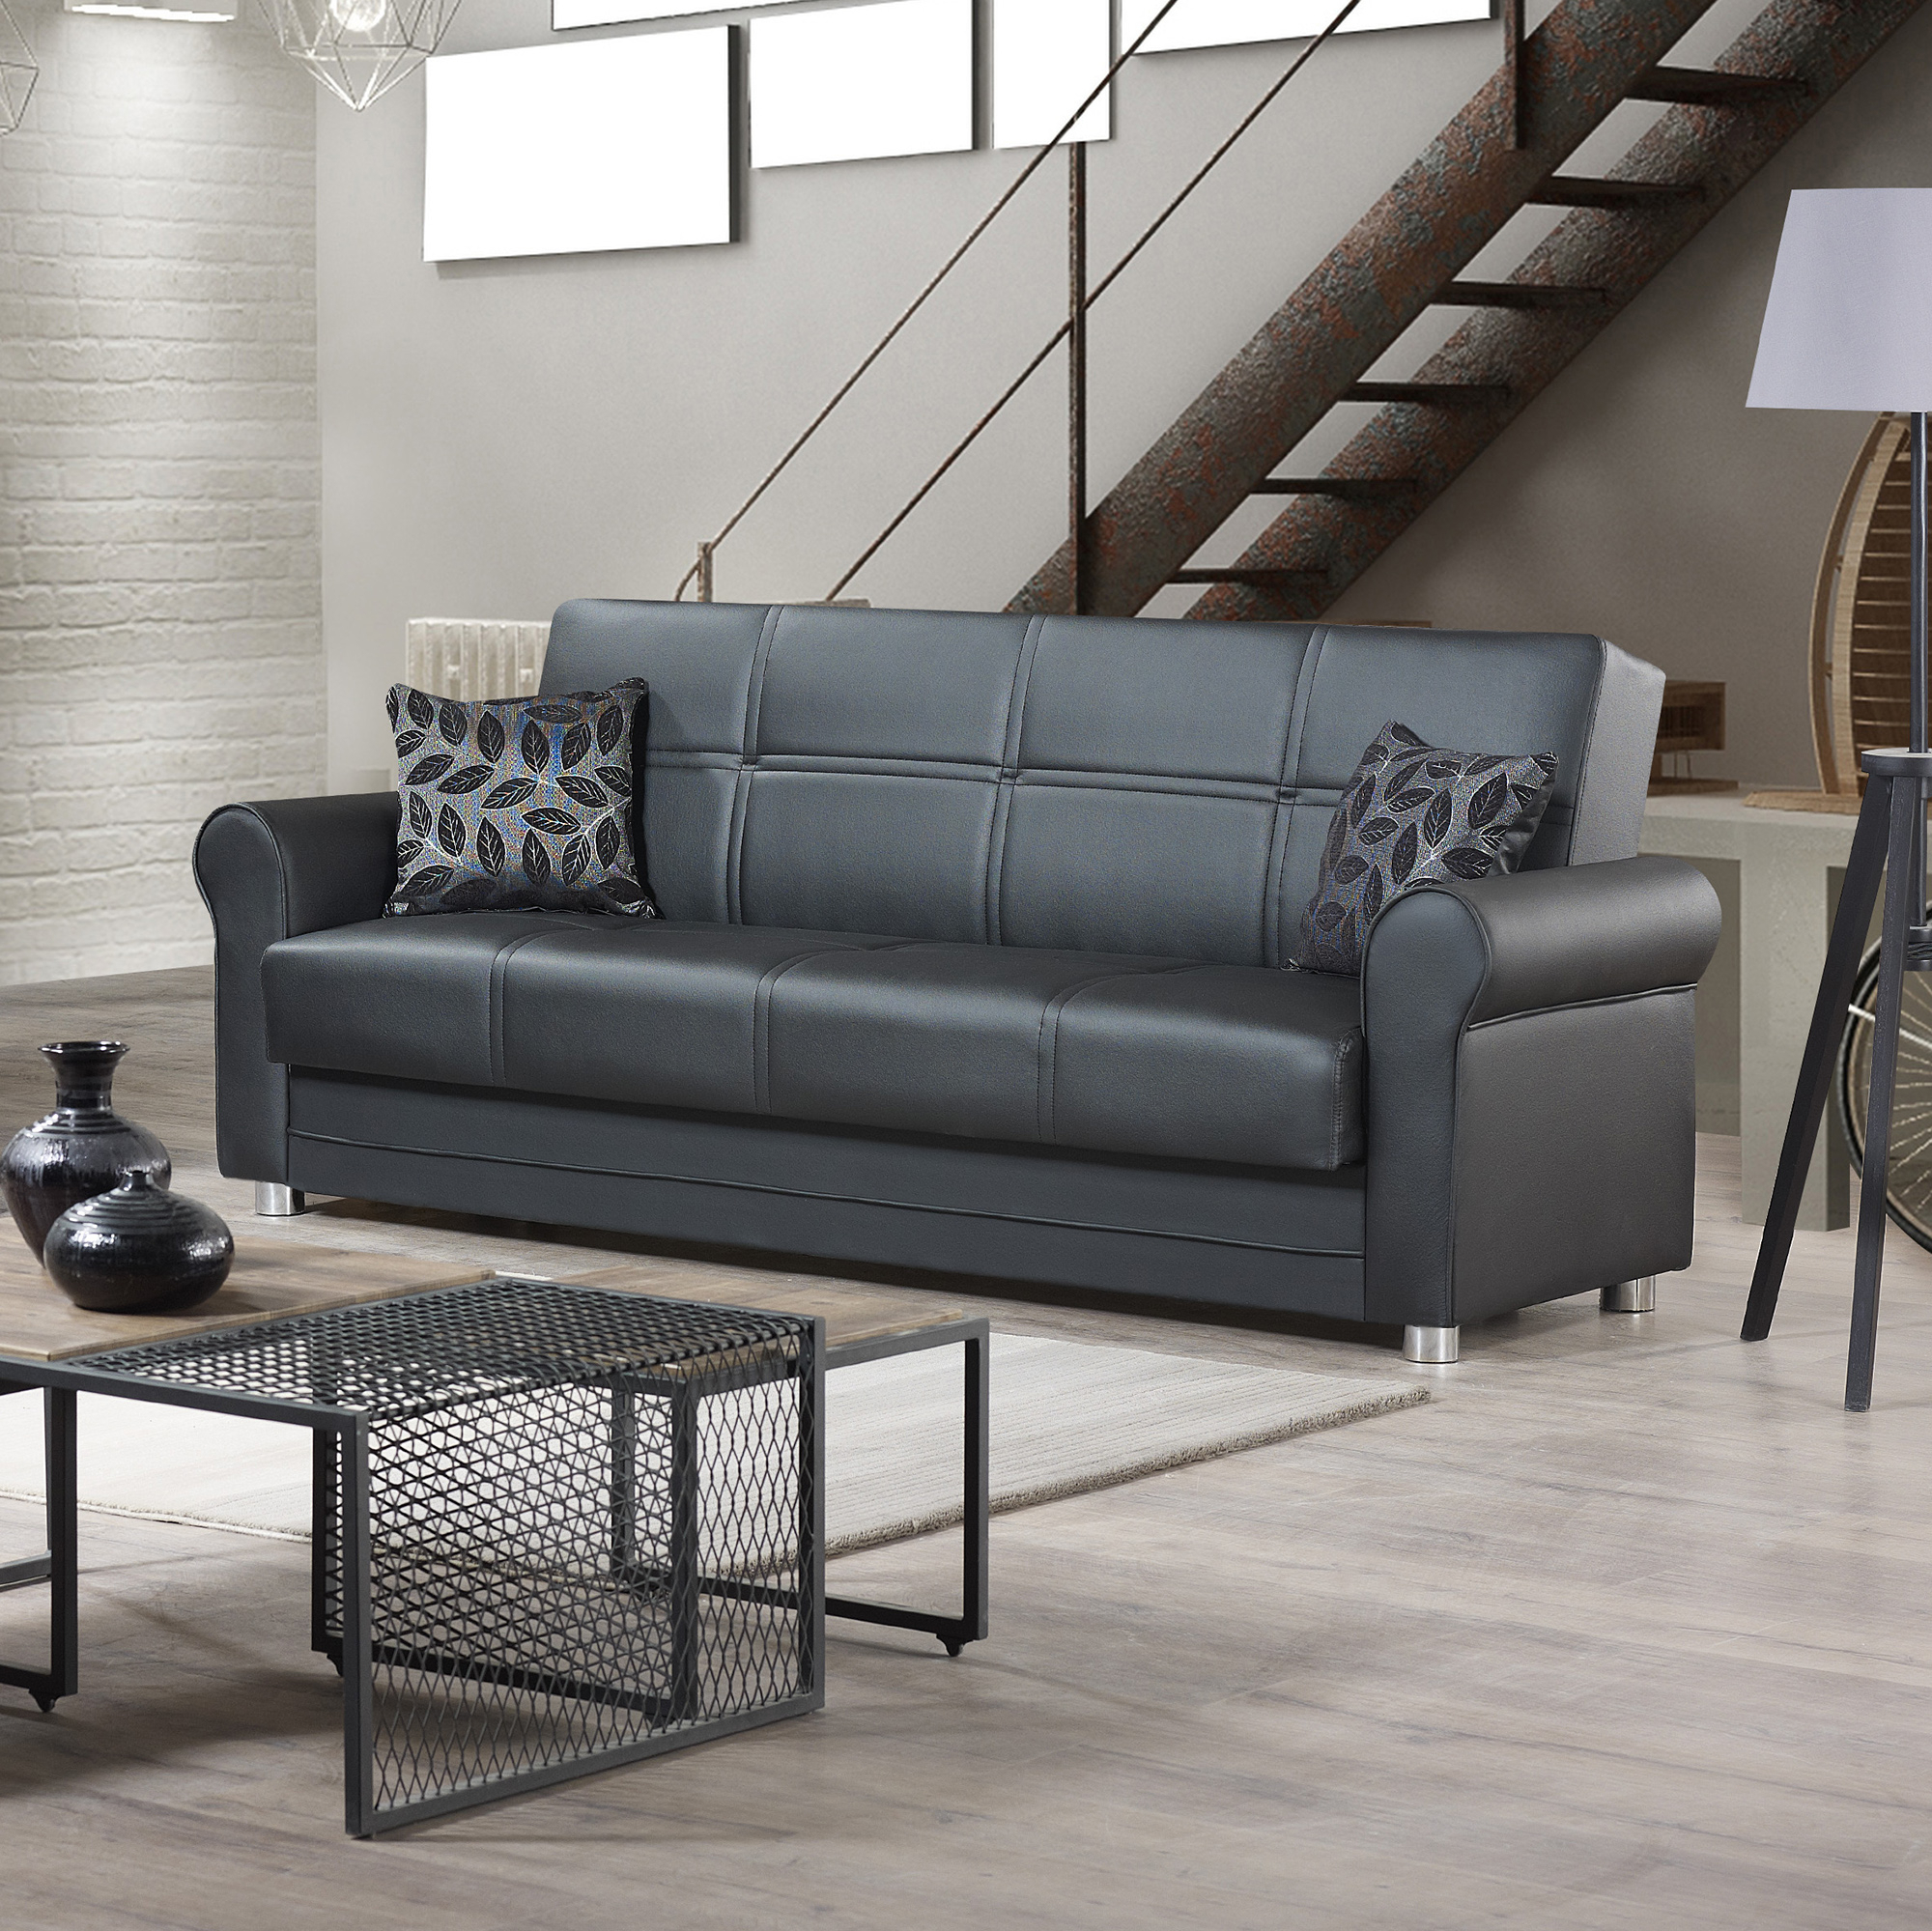 Ottomanson Avalon Sofa Bed With Storage In Leather Within Hartford Storage Sectional Futon Sofas (View 5 of 15)